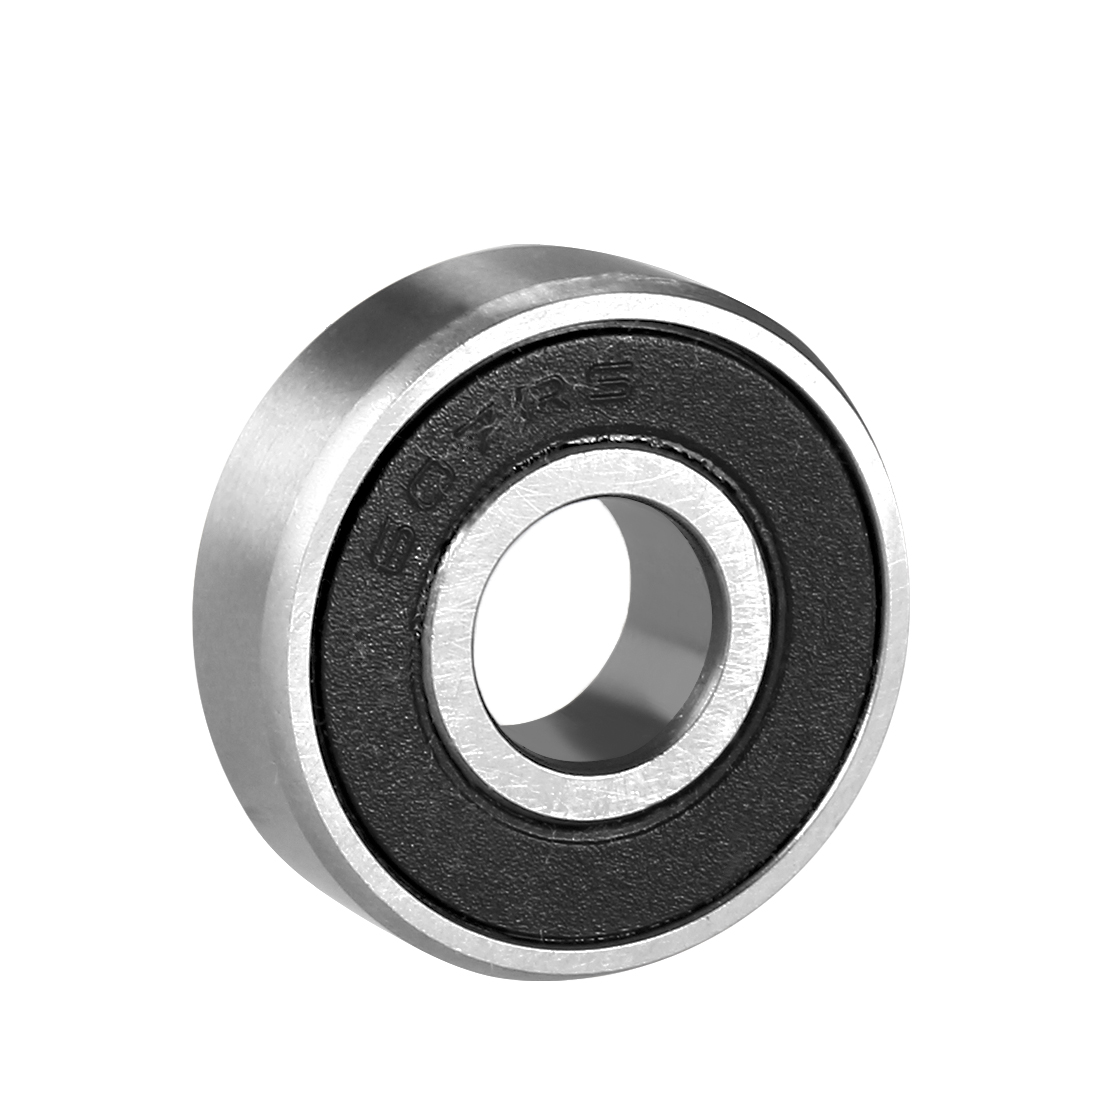 Deep Groove Ball Bearing 607RS Single Sealed, 7mm x 19mm x 6mm Chrome Steel Bearings, 1-Pack